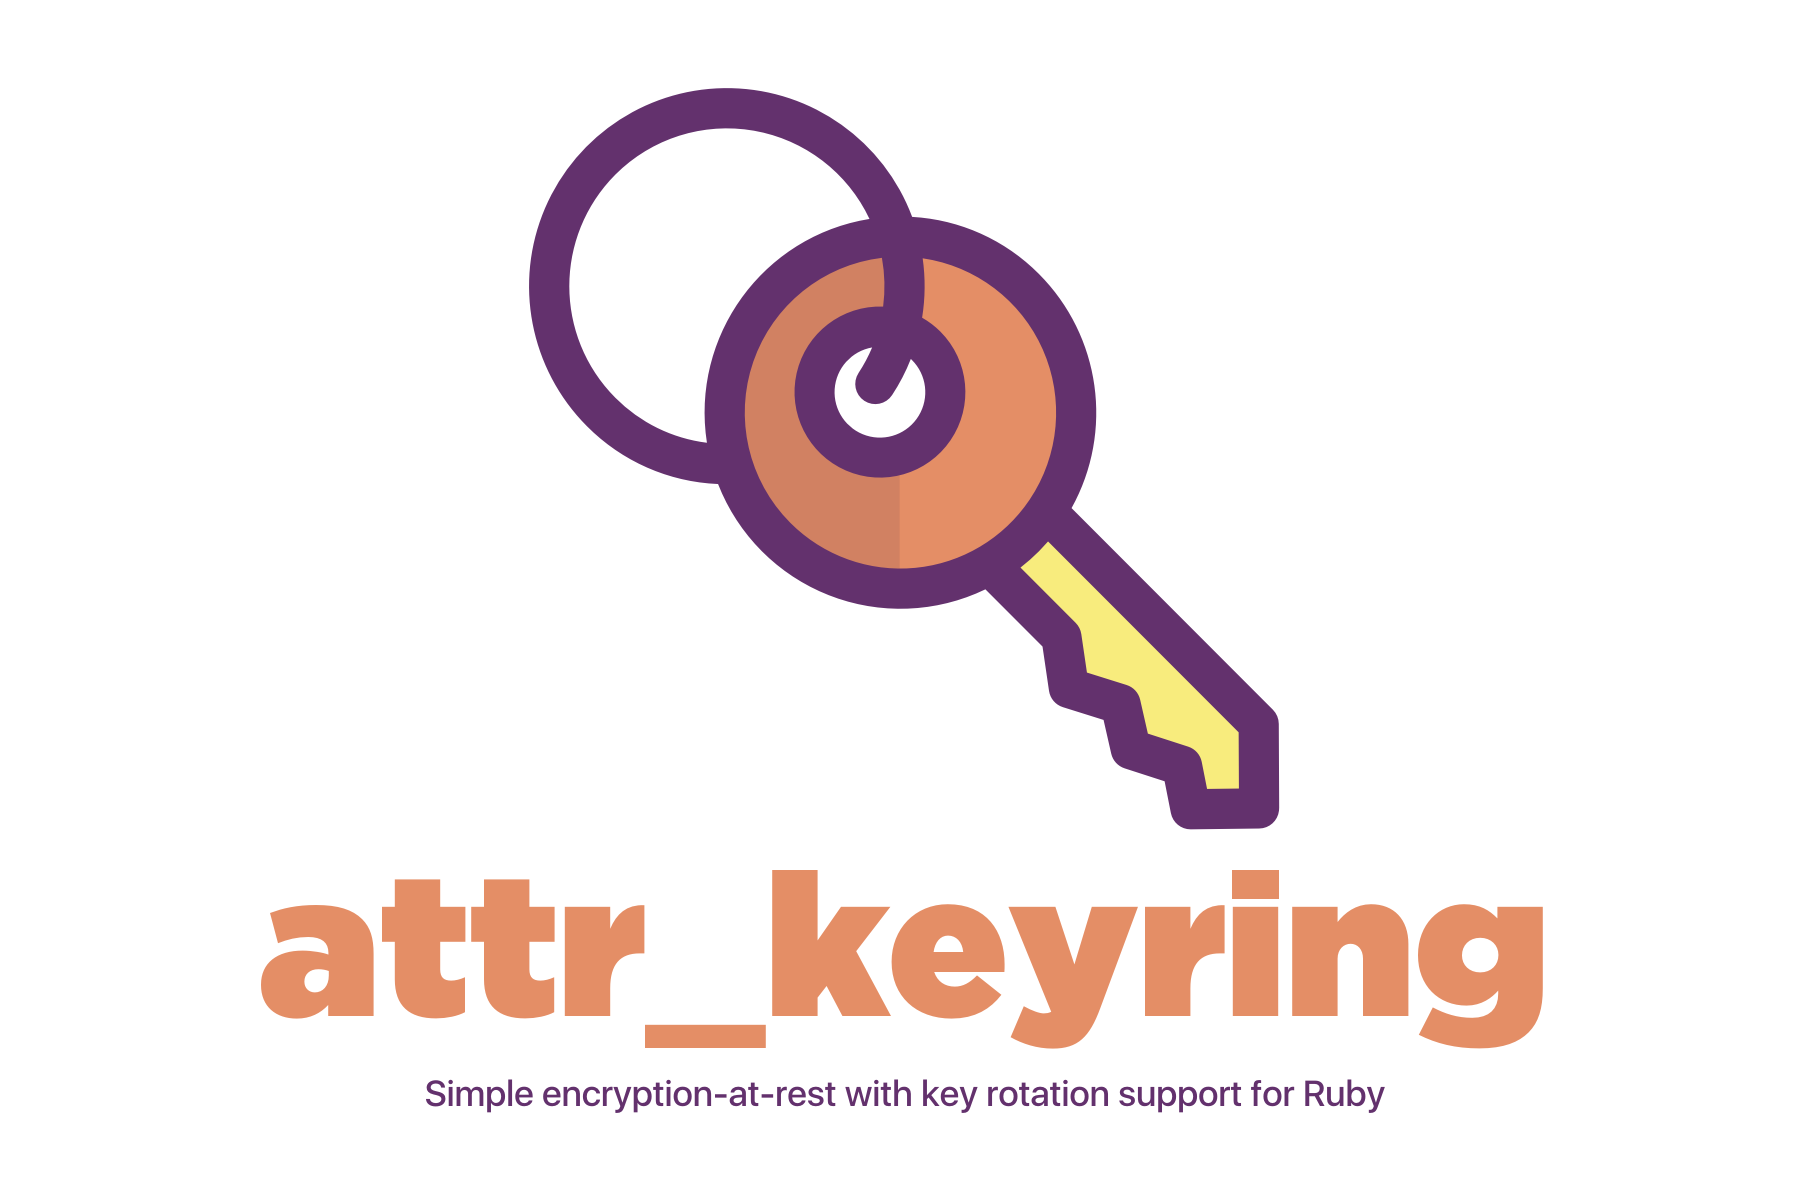 attr_keyring: Simple encryption-at-rest with key rotation support for Ruby.